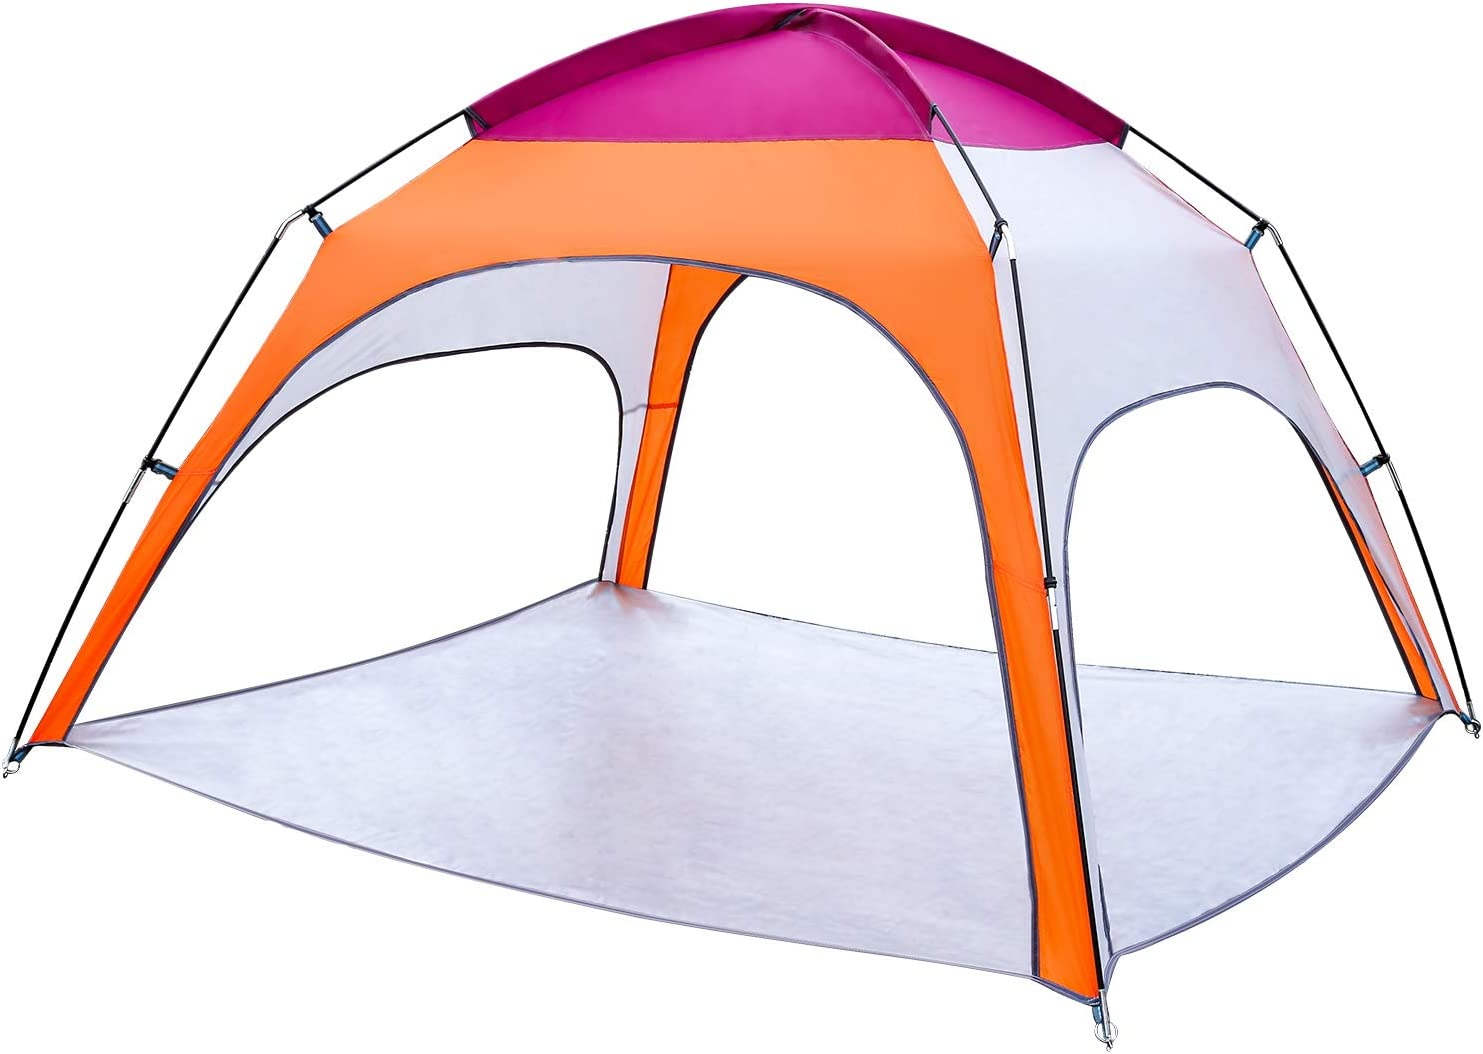 EooCoo Dome Special Campaign Tent TET899 Sun Shelter Instant Shade Canopy Parasol Trust